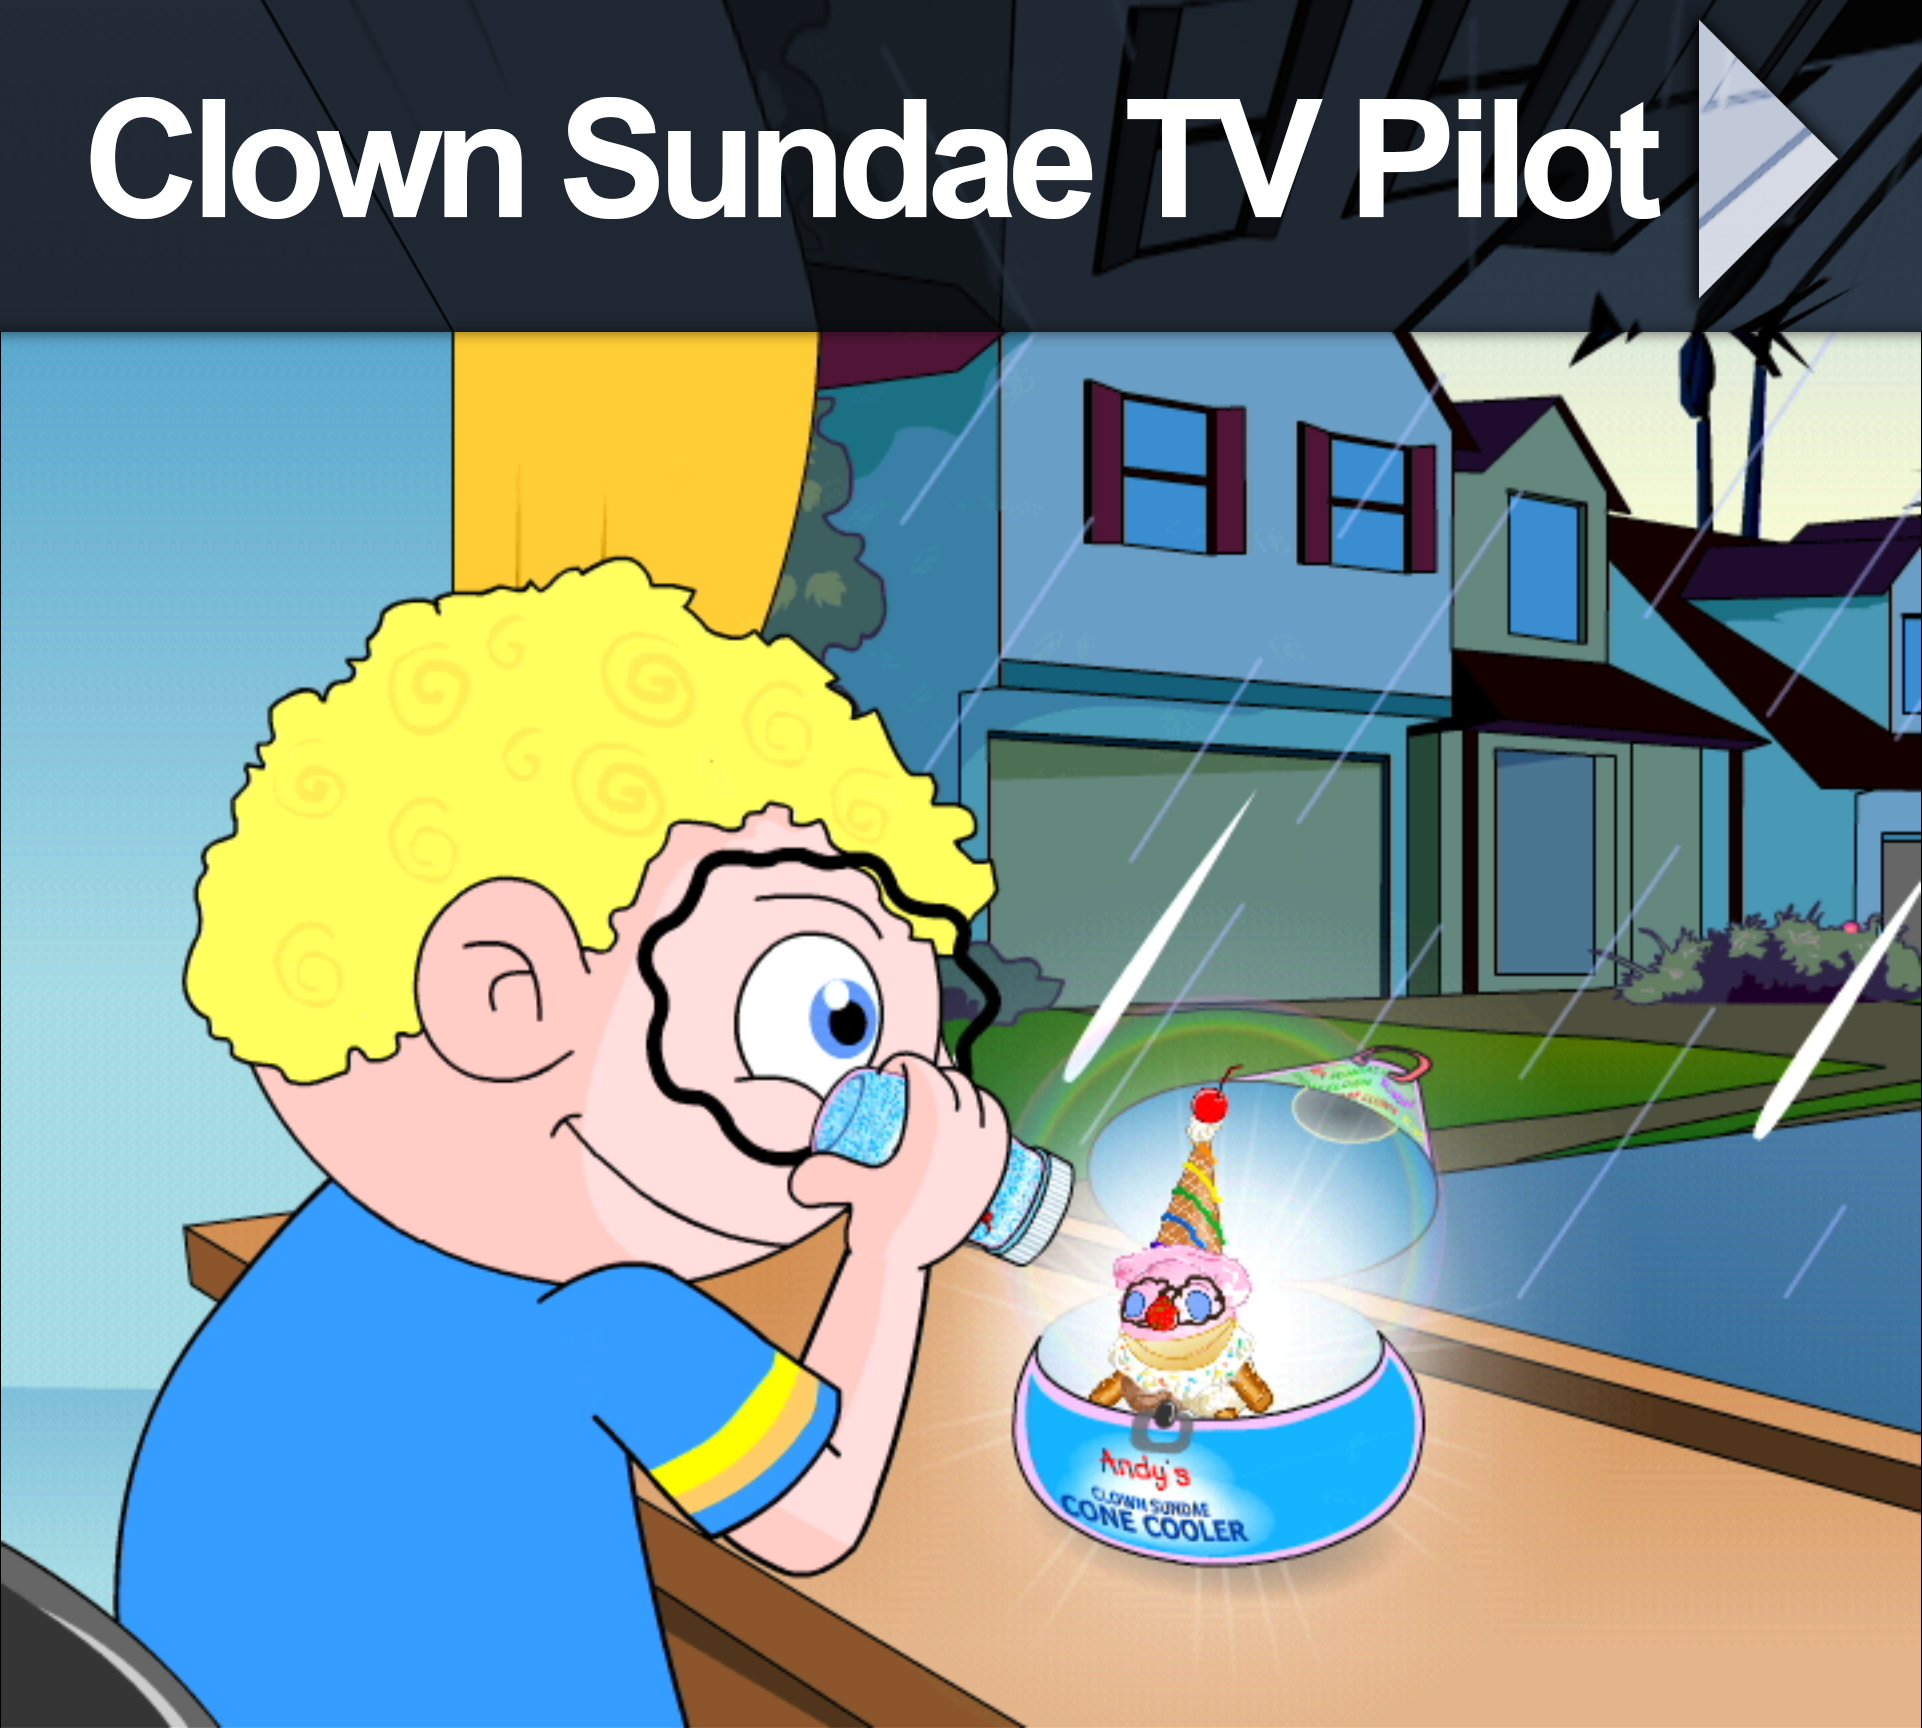 Clown Sundae TV Pilot